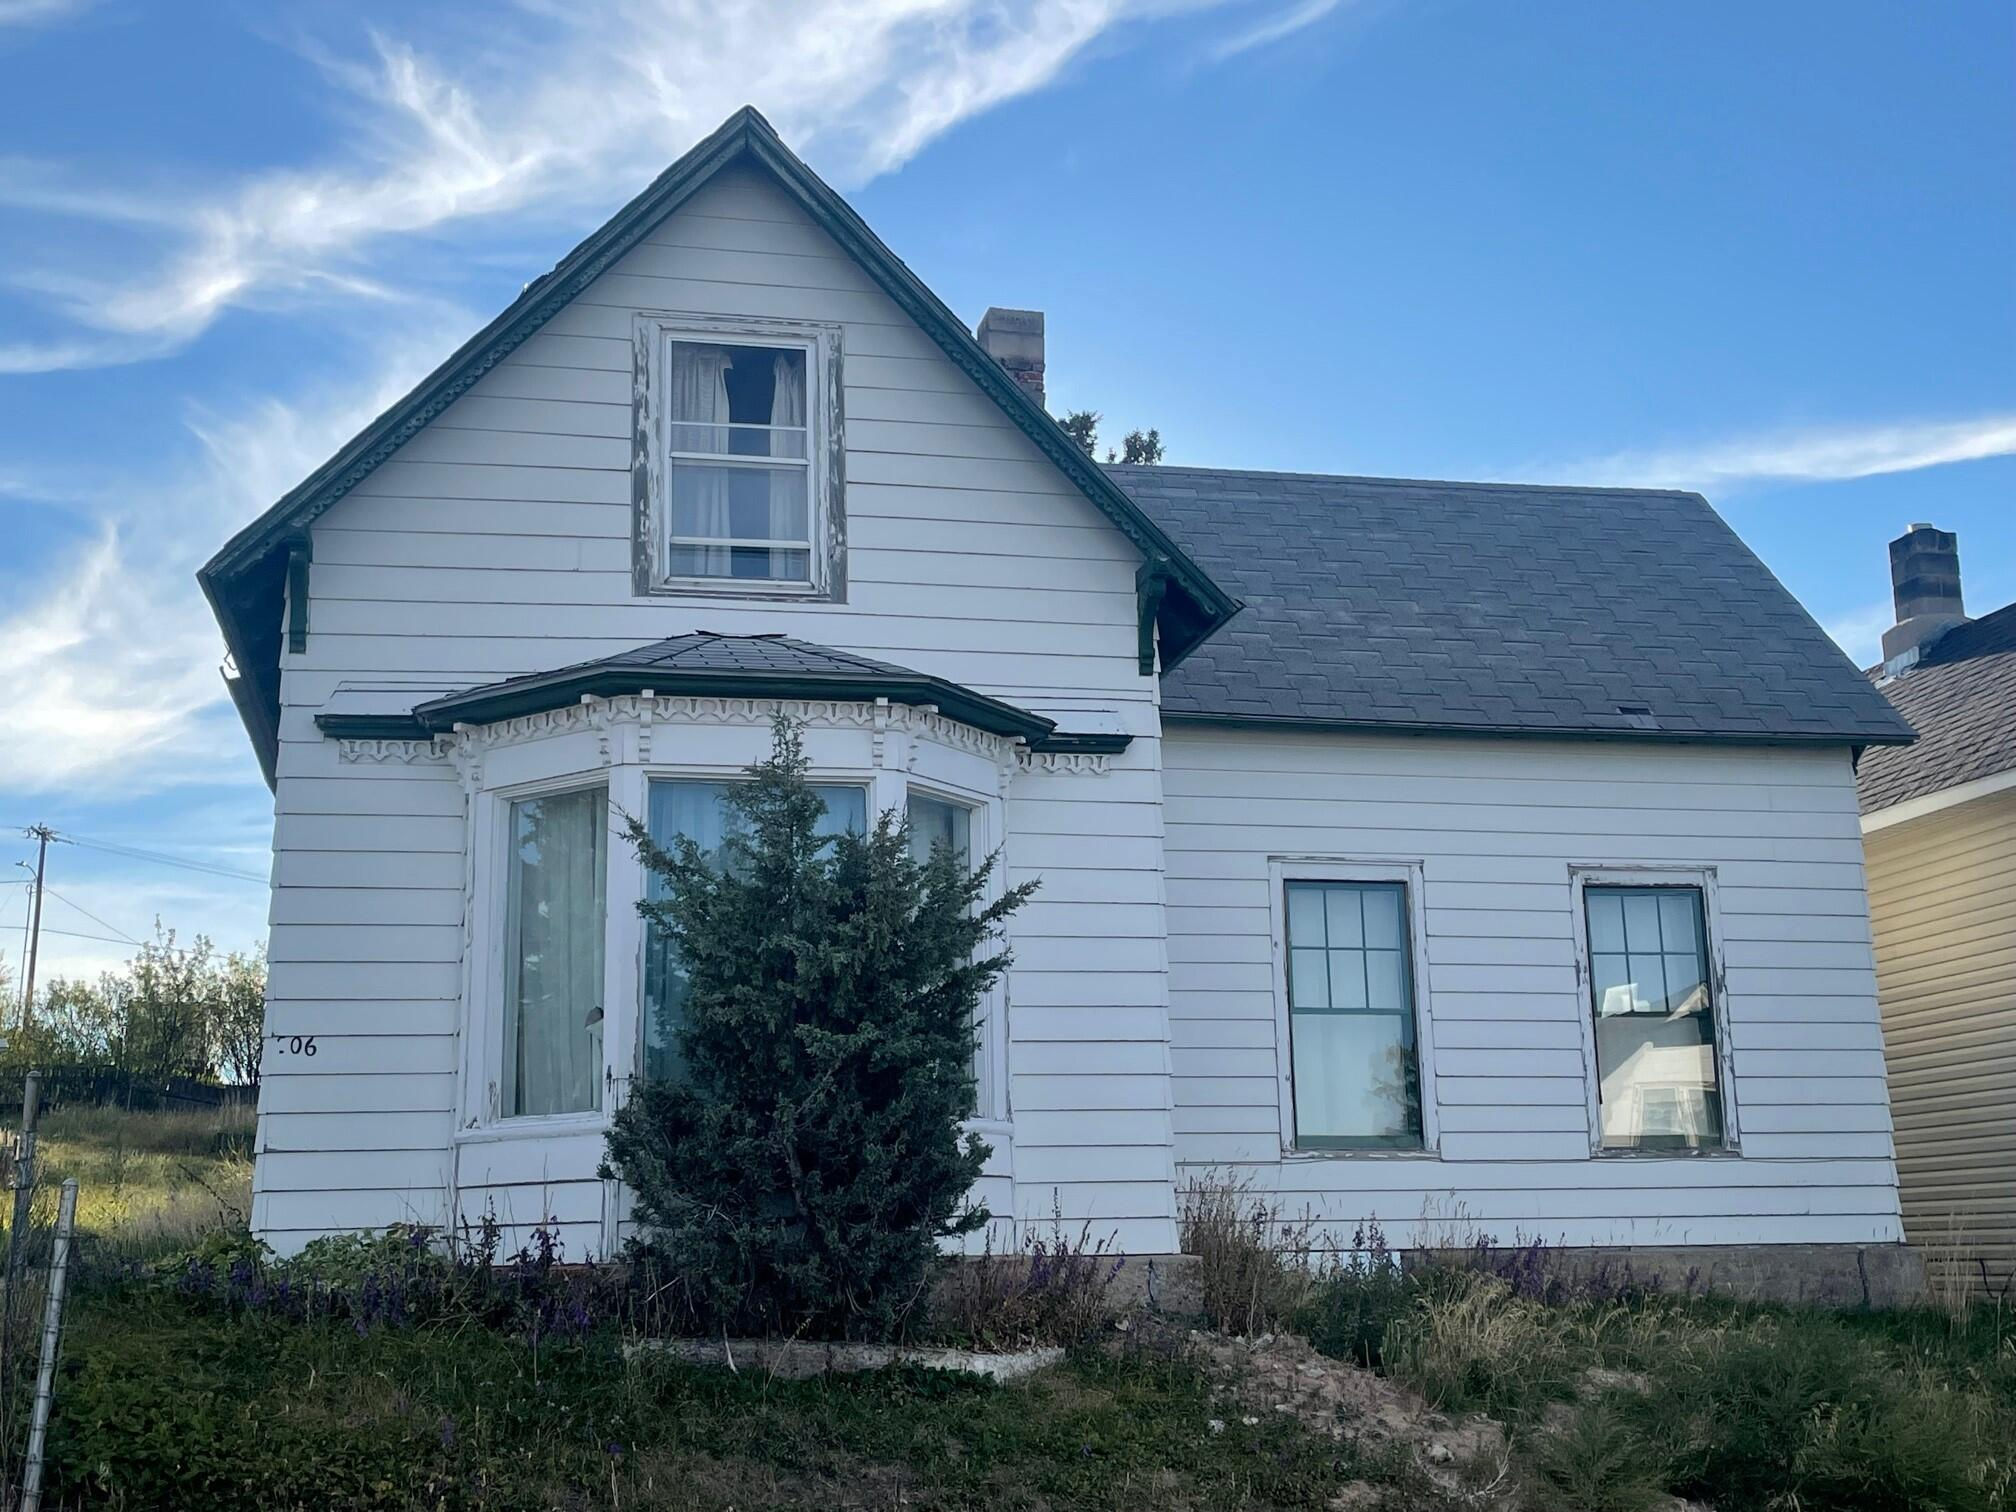 This two bedroom, one bath home was built in 1908 and has the historical charm of the homes of the turn of the century.  Just to the north of the property is the historical landmark known as the Castle in White Sulphur Springs. This property has a private well used for lawn irrigation. Enjoy all the recreation that the area has to offer, hunting, fishing, skiing, trail riding, hiking, and so much more.  The local hot springs, eateries, and brewery are attractions you won't want to miss.  White Sulphur Springs has all of the modern conveniences including a hospital, banks, grocery and retail stores.  This home is cozy and in a wonderful location.